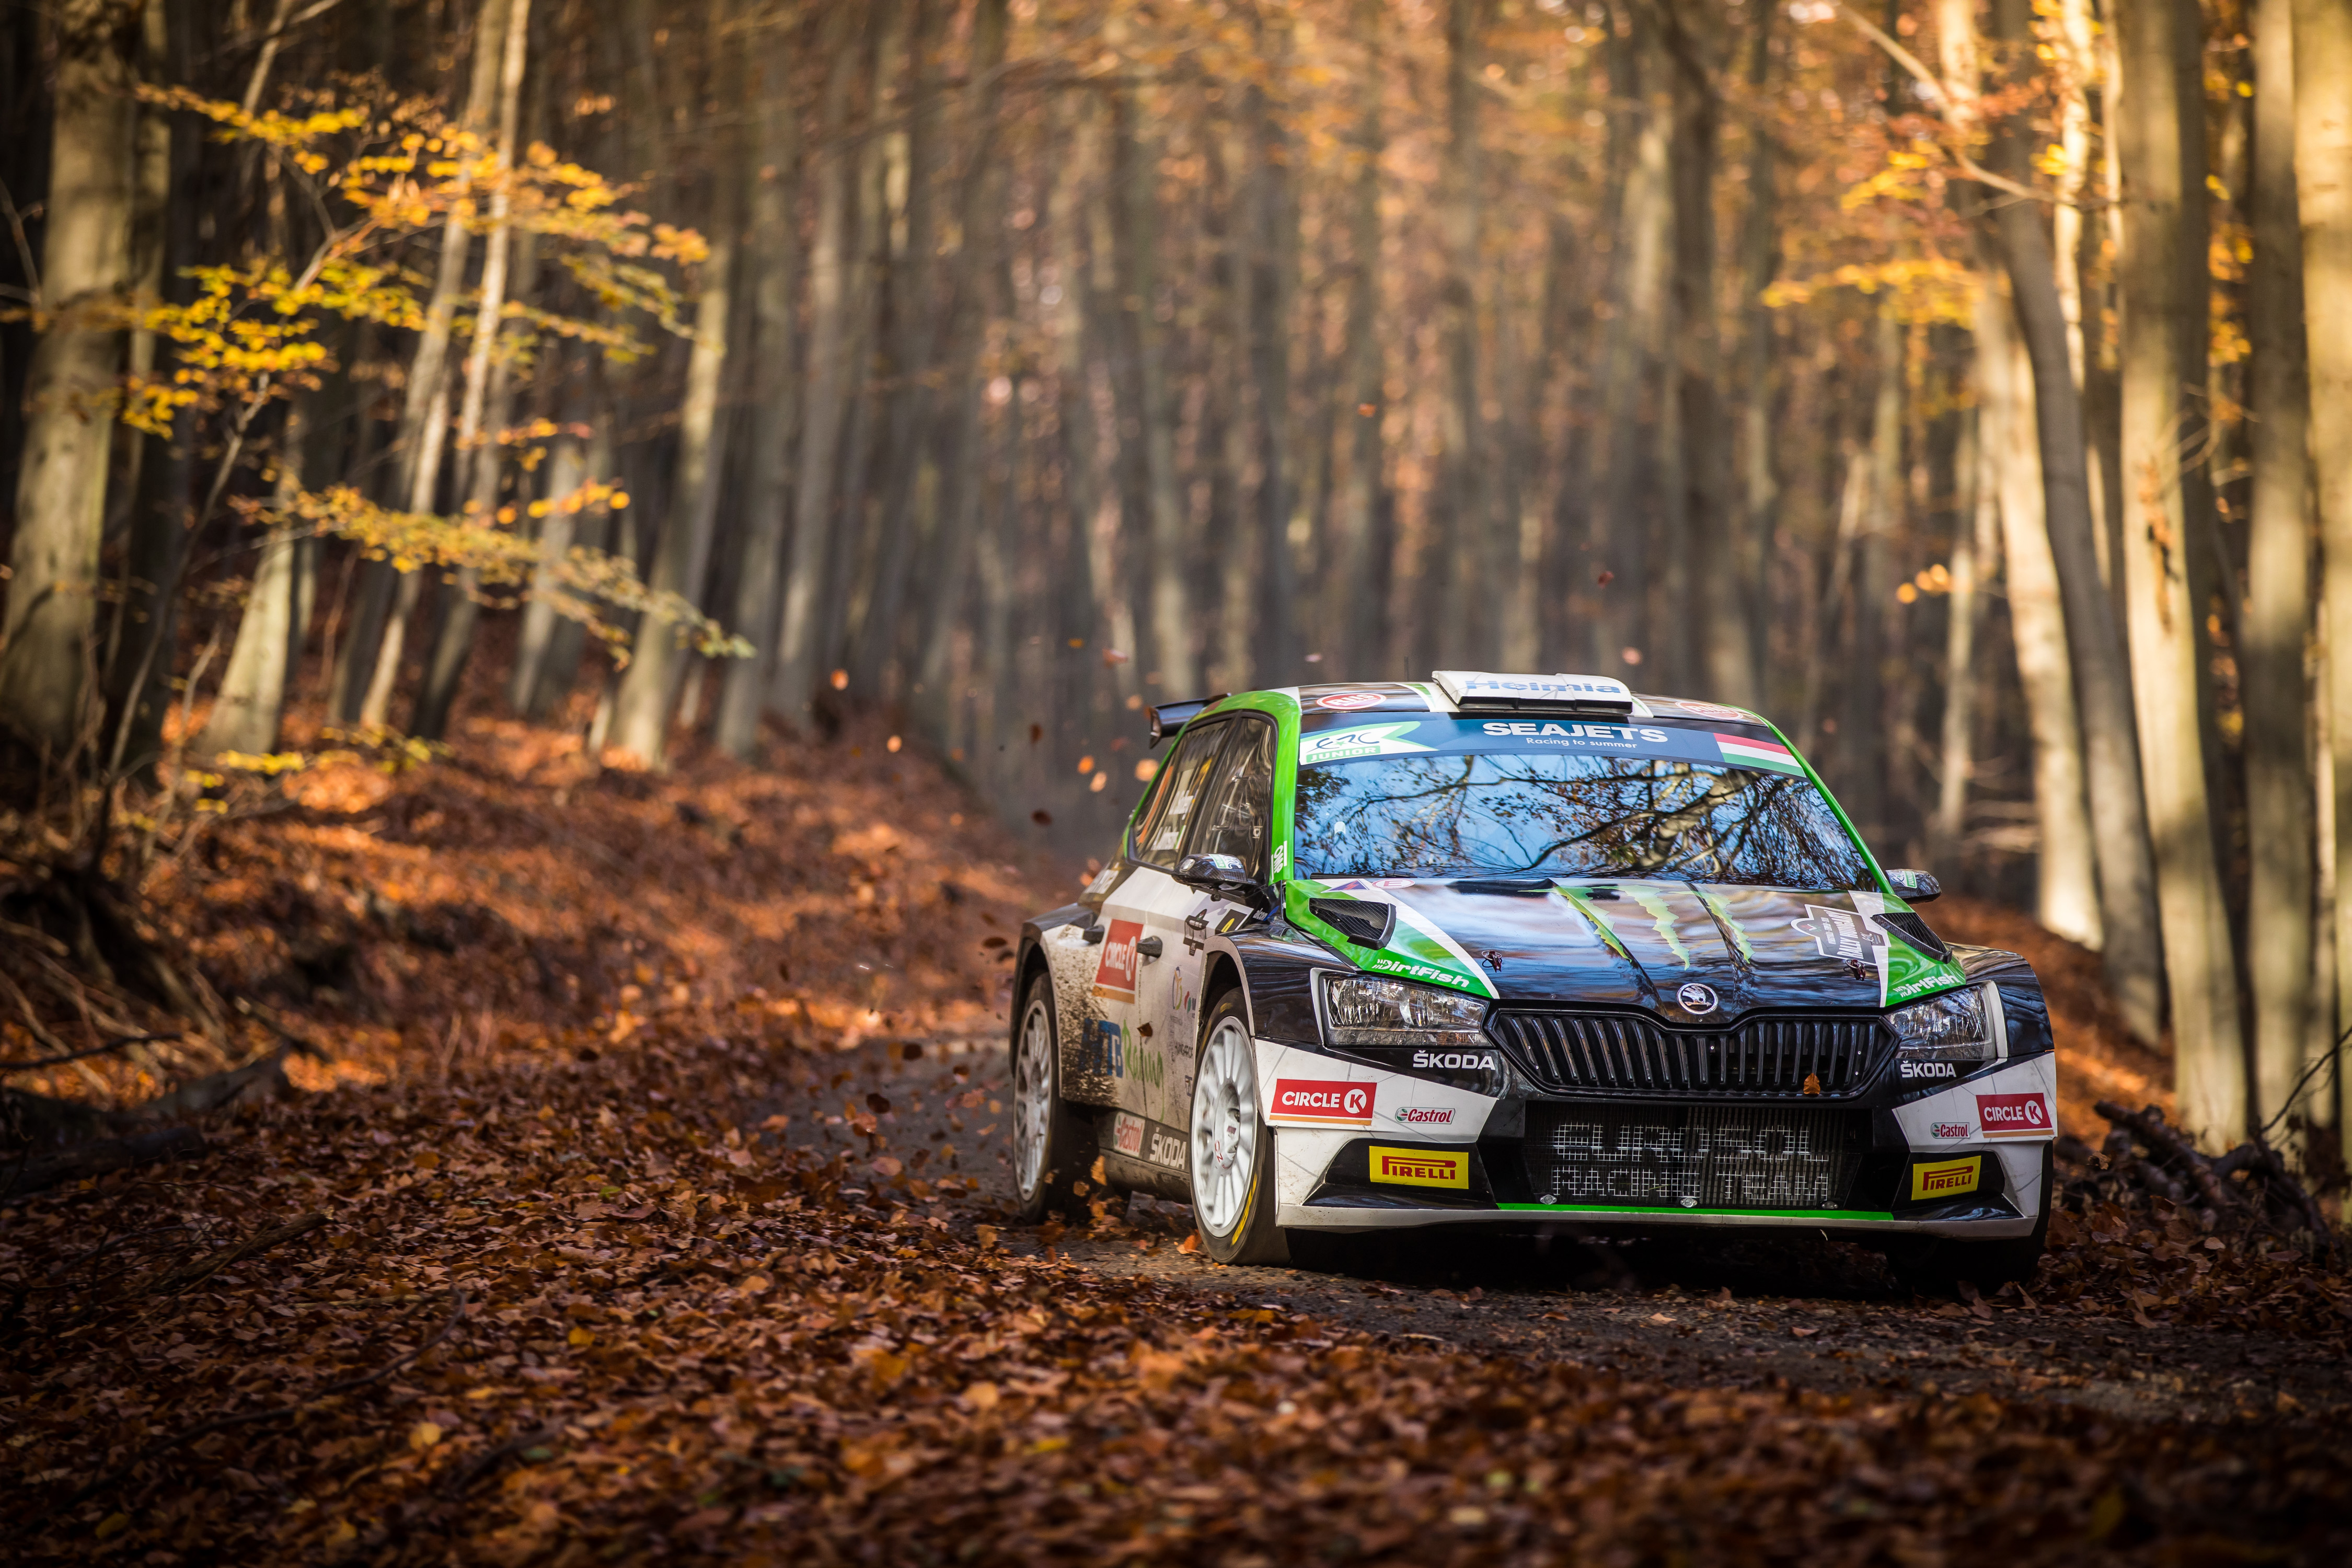 ACI Rally Monza: Final round of the FIA World Rally Championship with strong presence of SKODA crews - Image 3